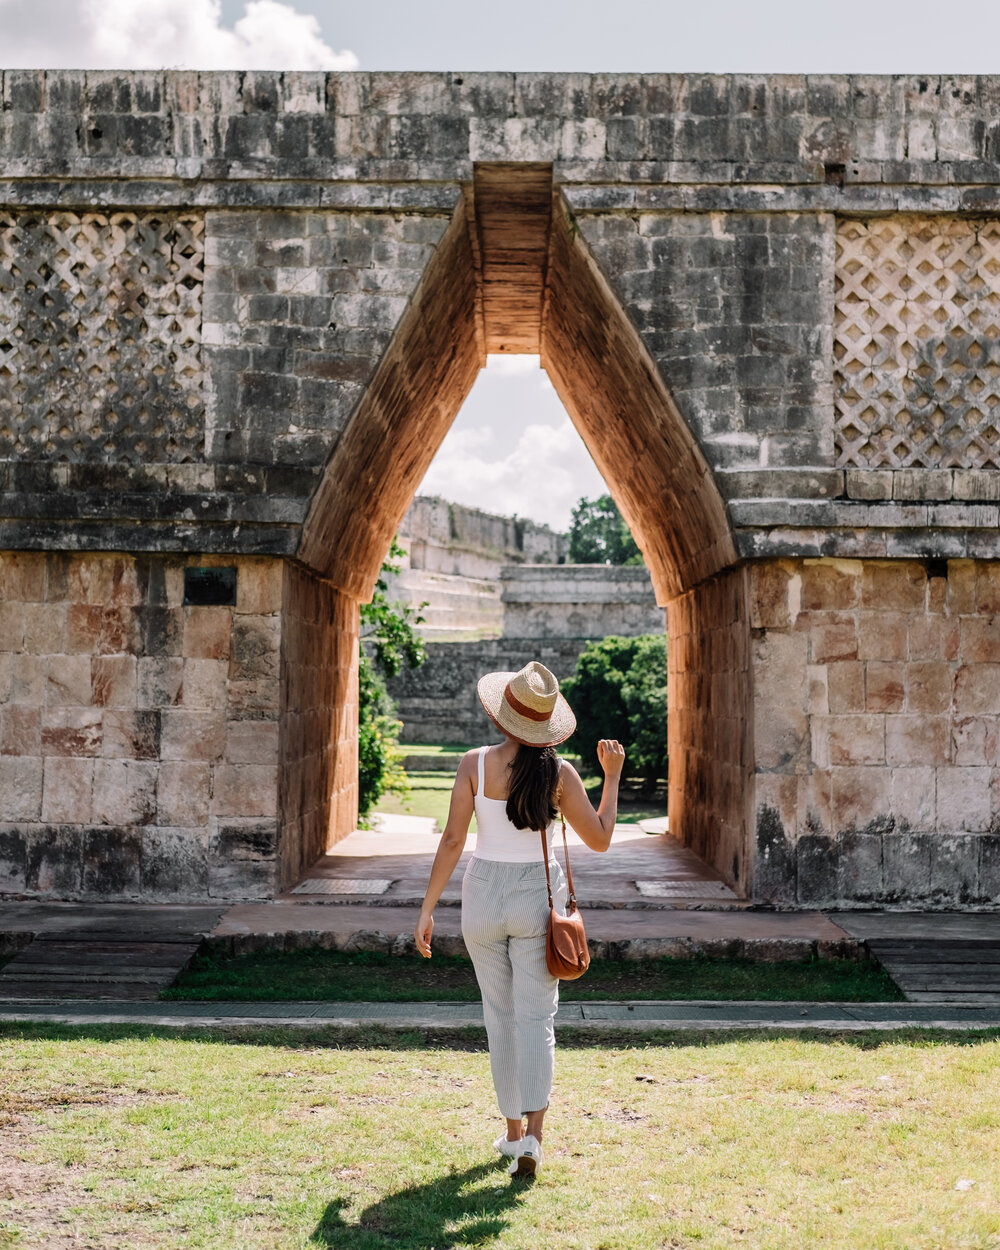 Rachel Off Duty: A Woman Admires the Ruins at Uxmal, Mexico